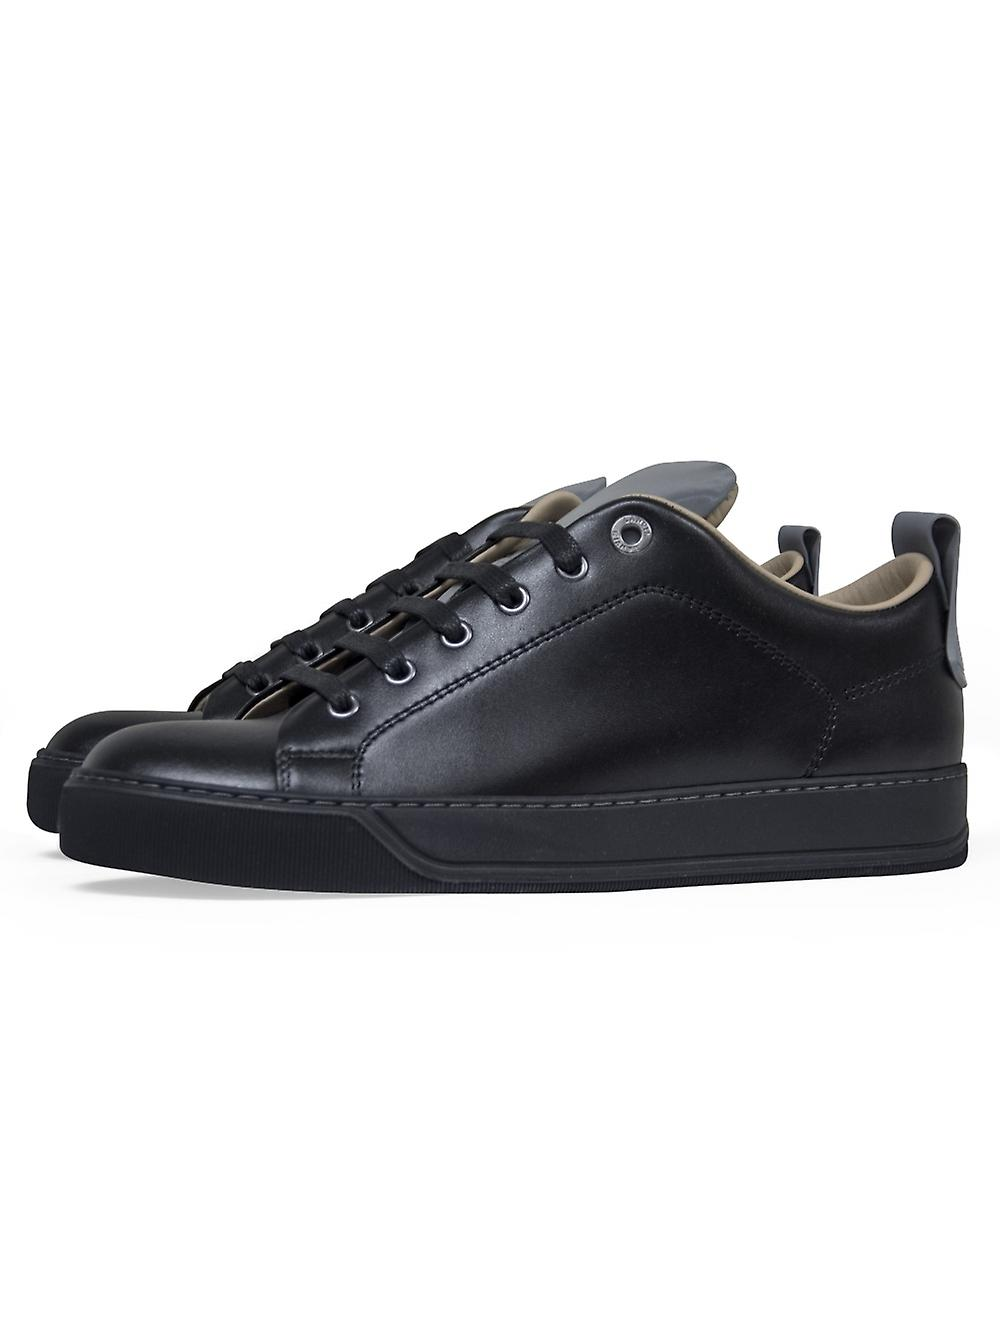 Lanvin Lanvin Leather Sneaker Panel Reflective Lanvin Black 1aFpdqa